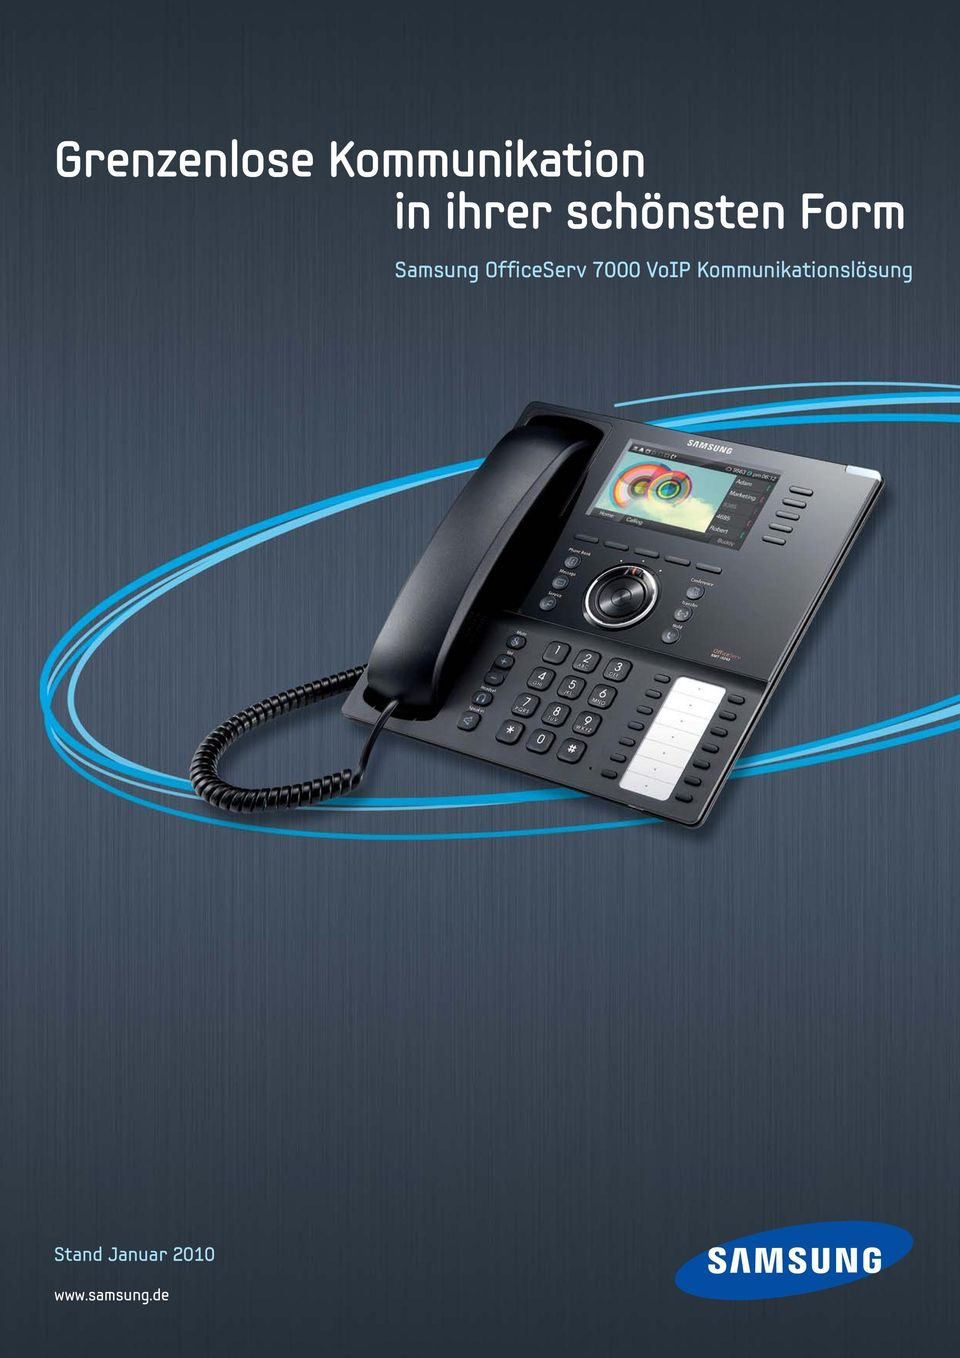 OfficeServ 7000 VoIP